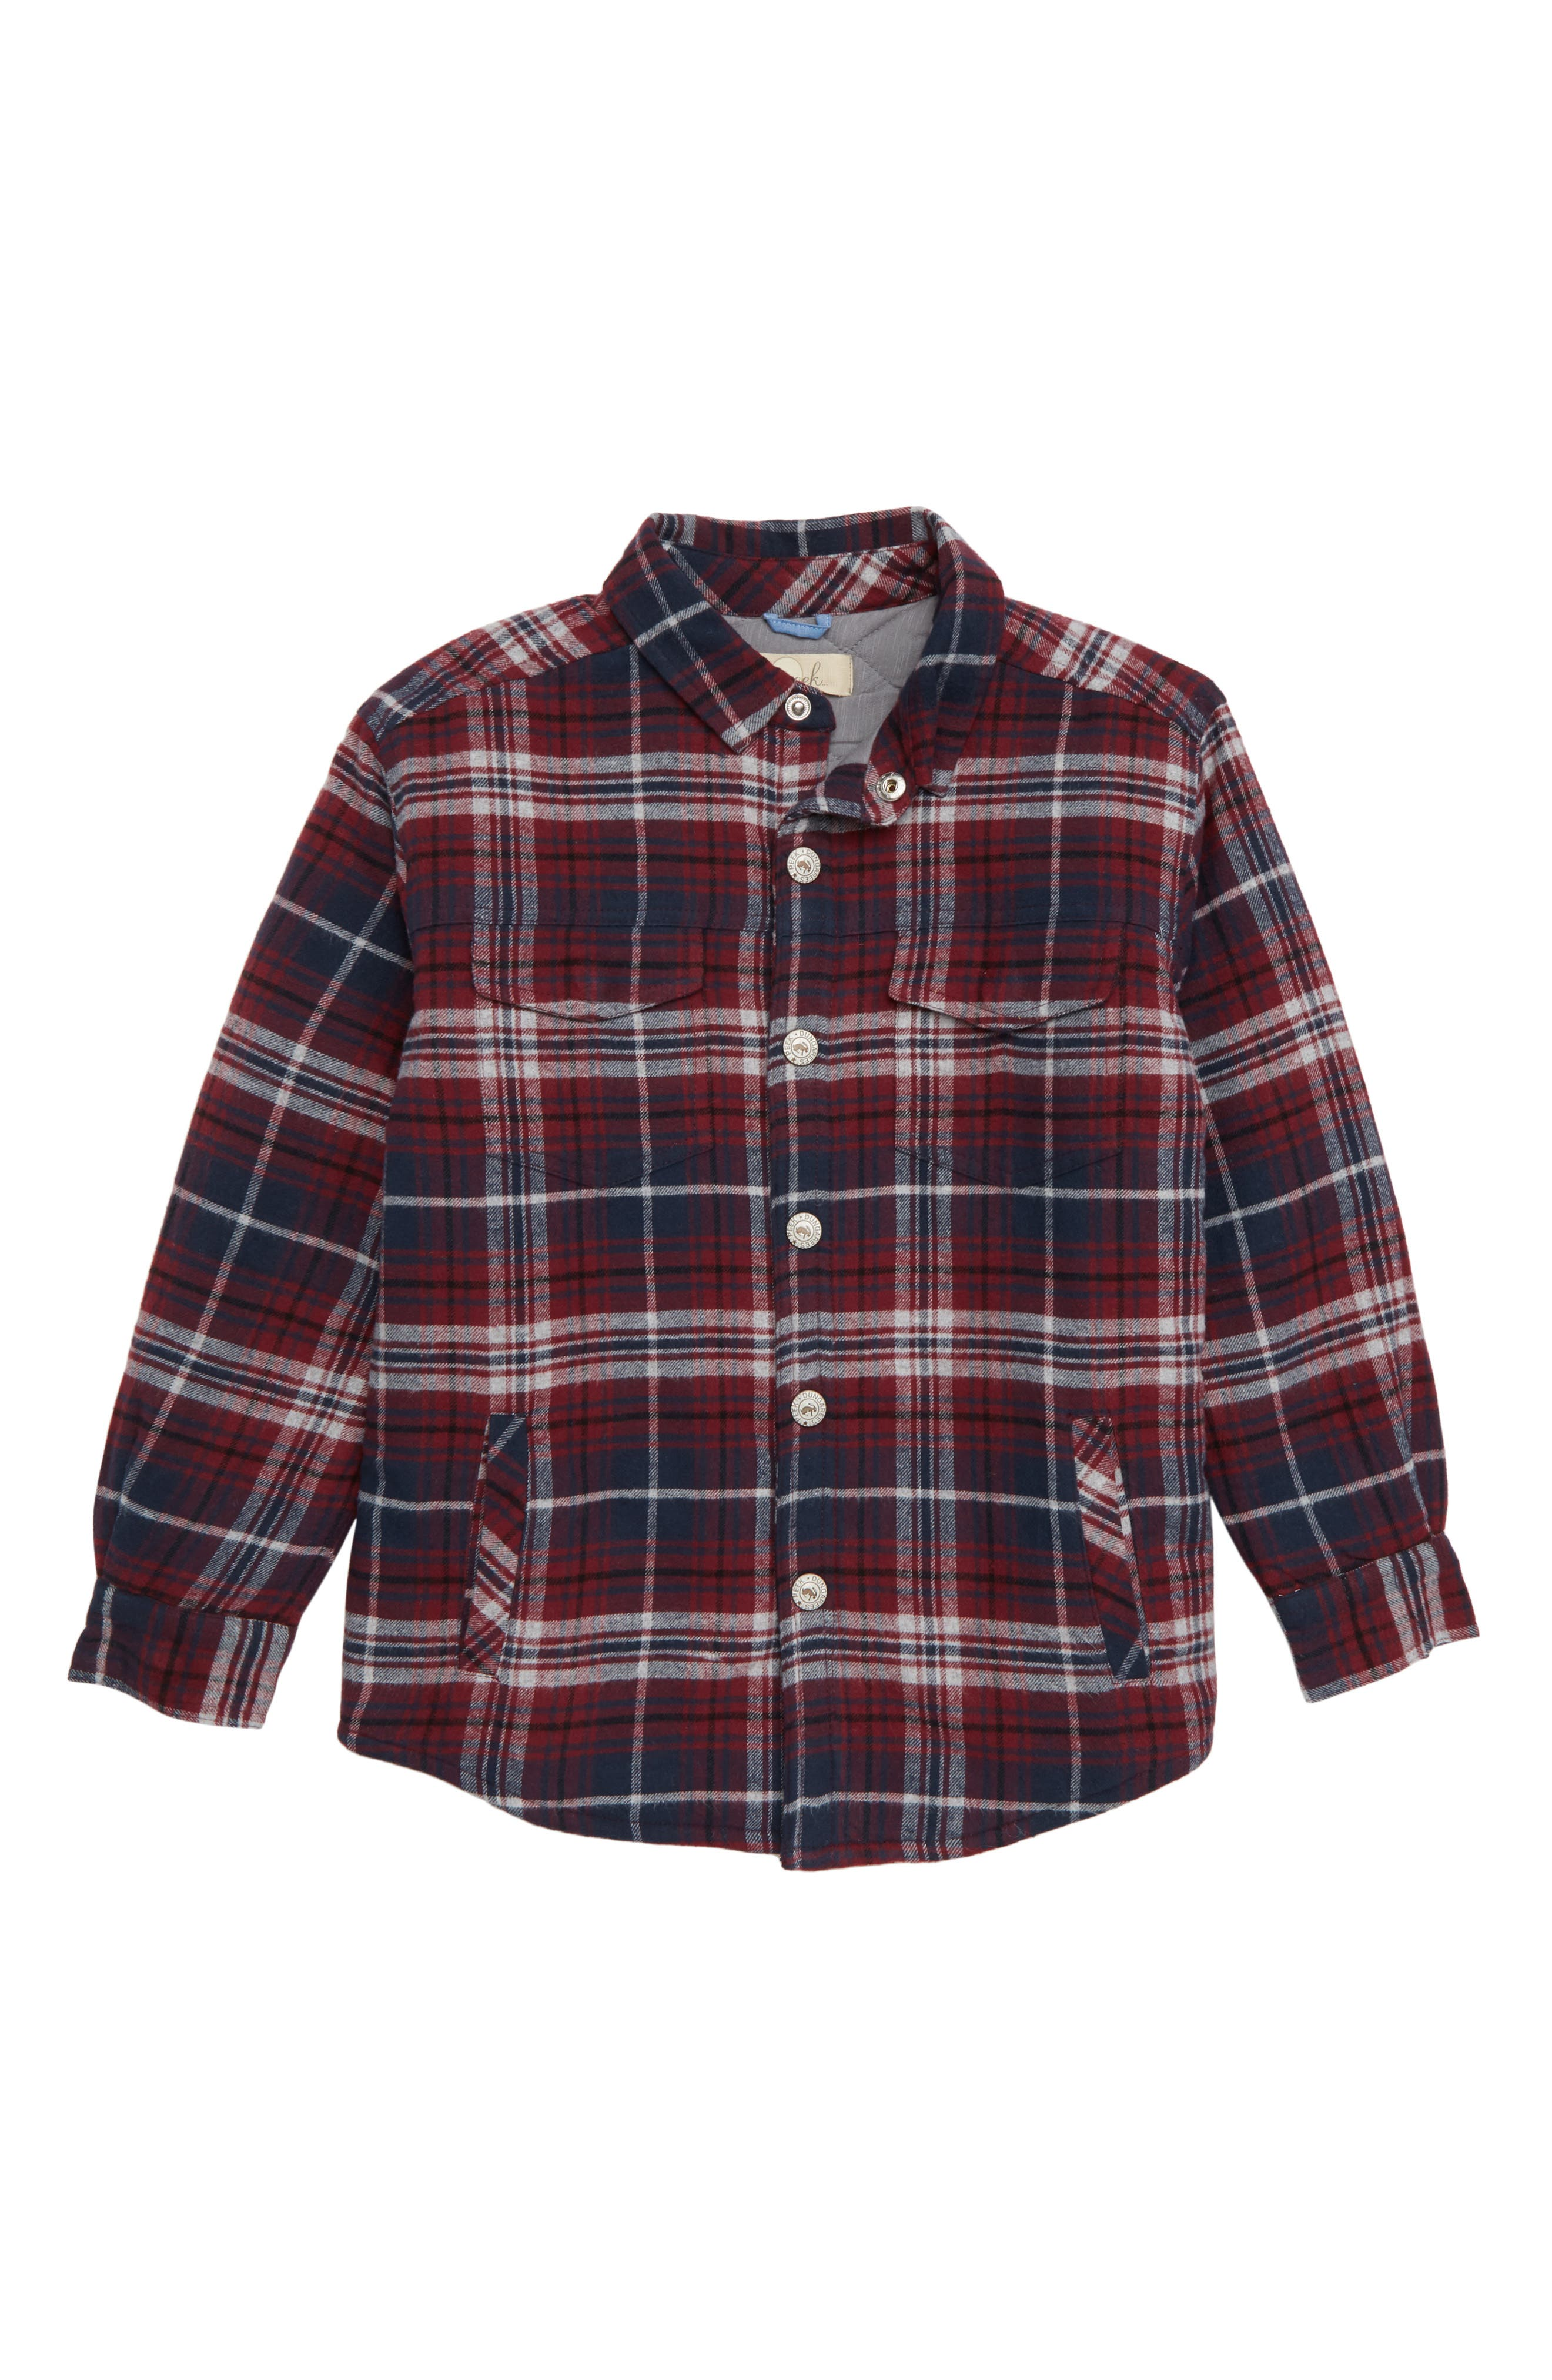 Aiden Quilted Flannel Shirt,                             Main thumbnail 1, color,                             BURGUNDY